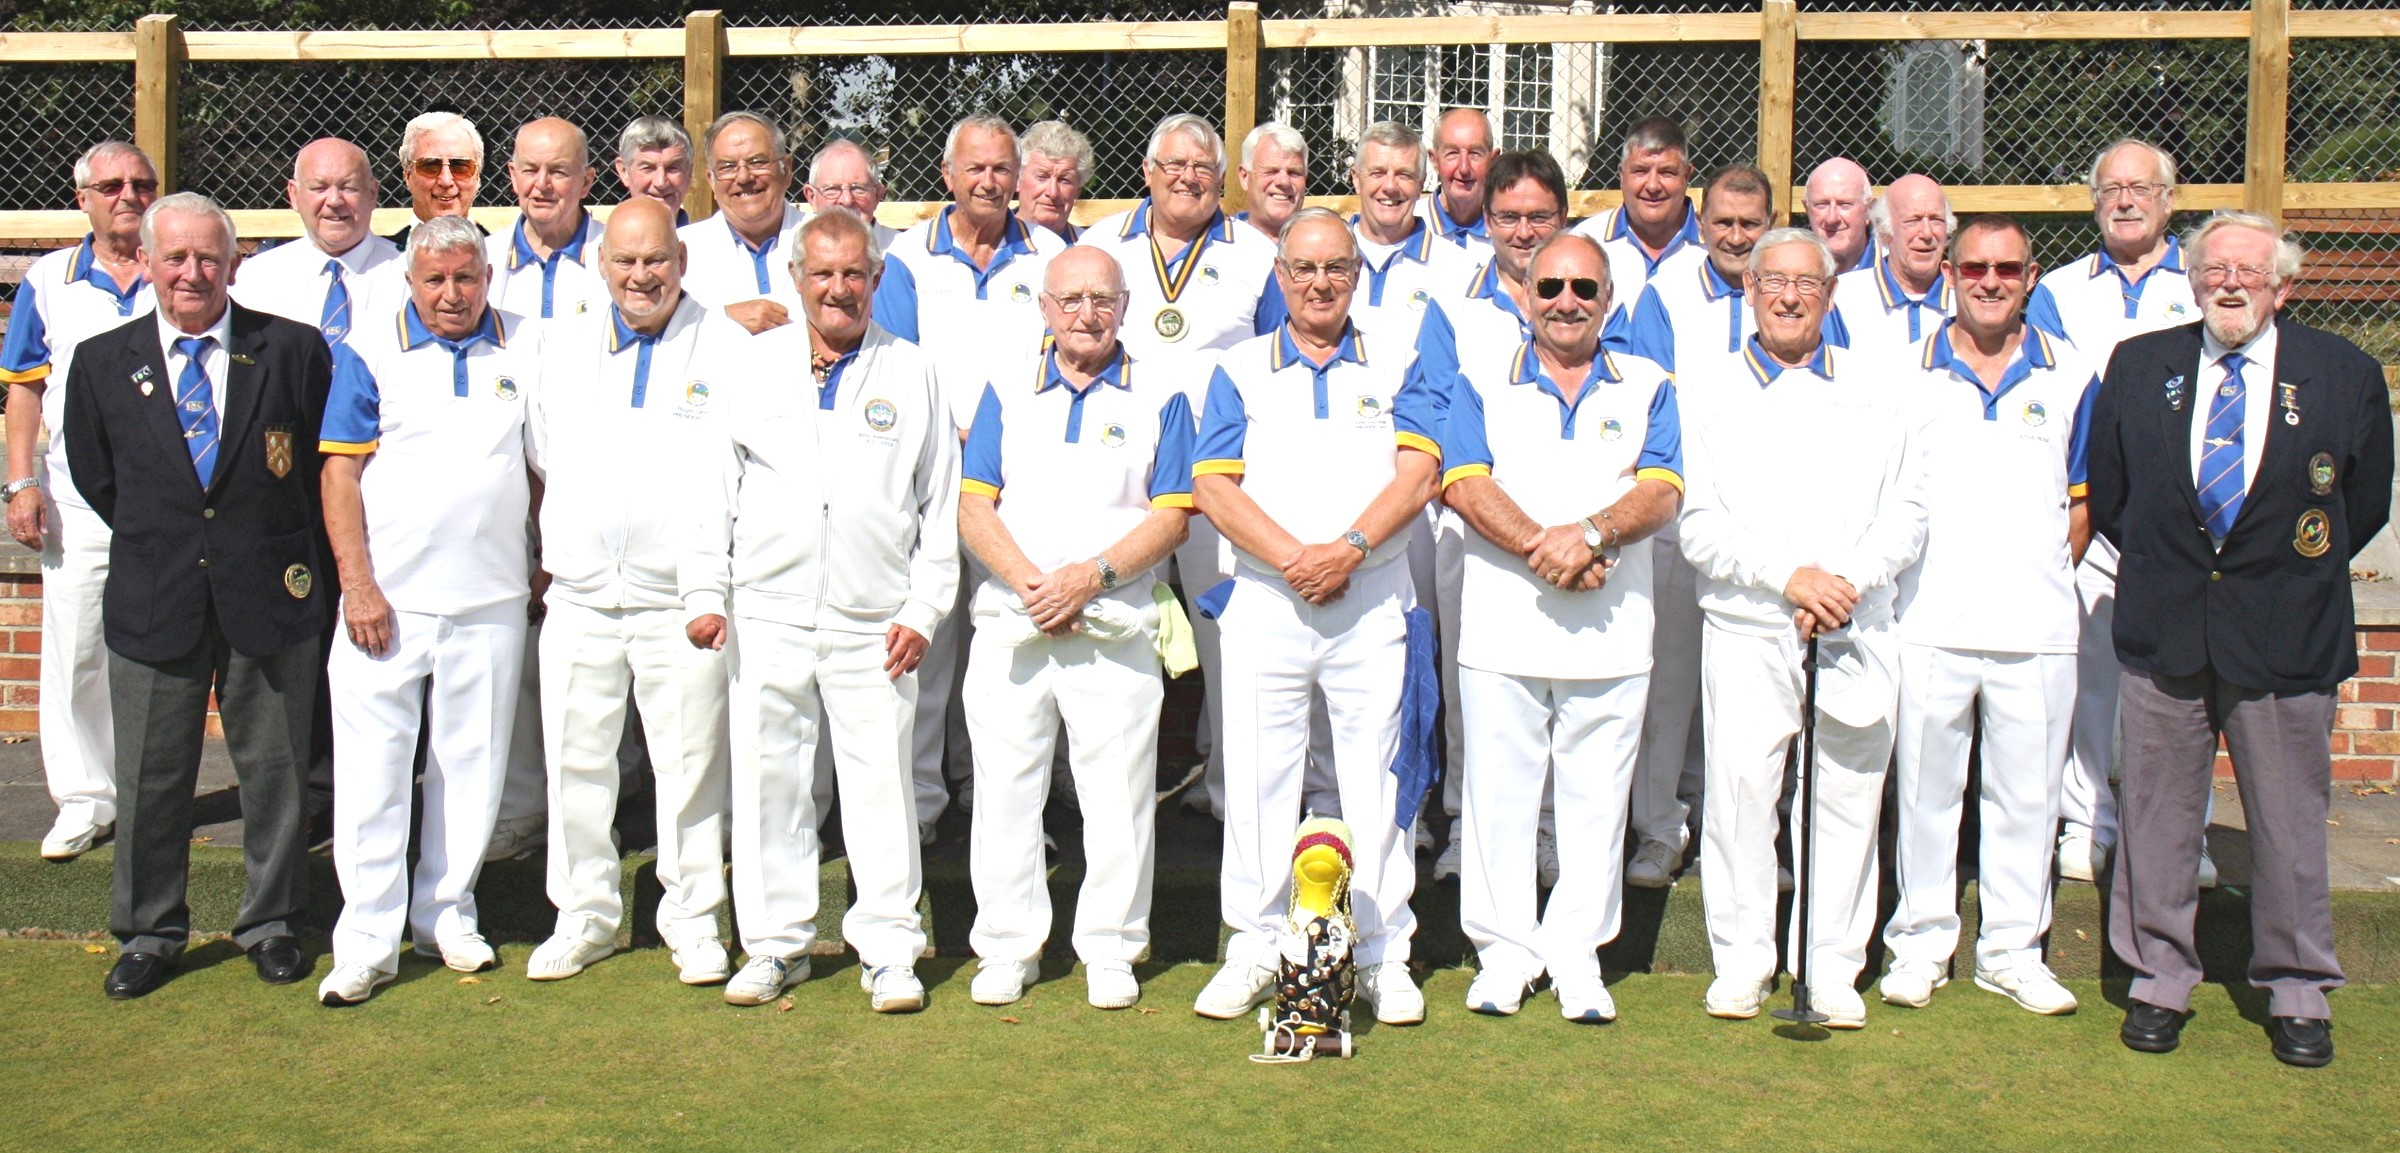 Wiltshire president's touring team, pictured before their match against Bitton Park in Devon